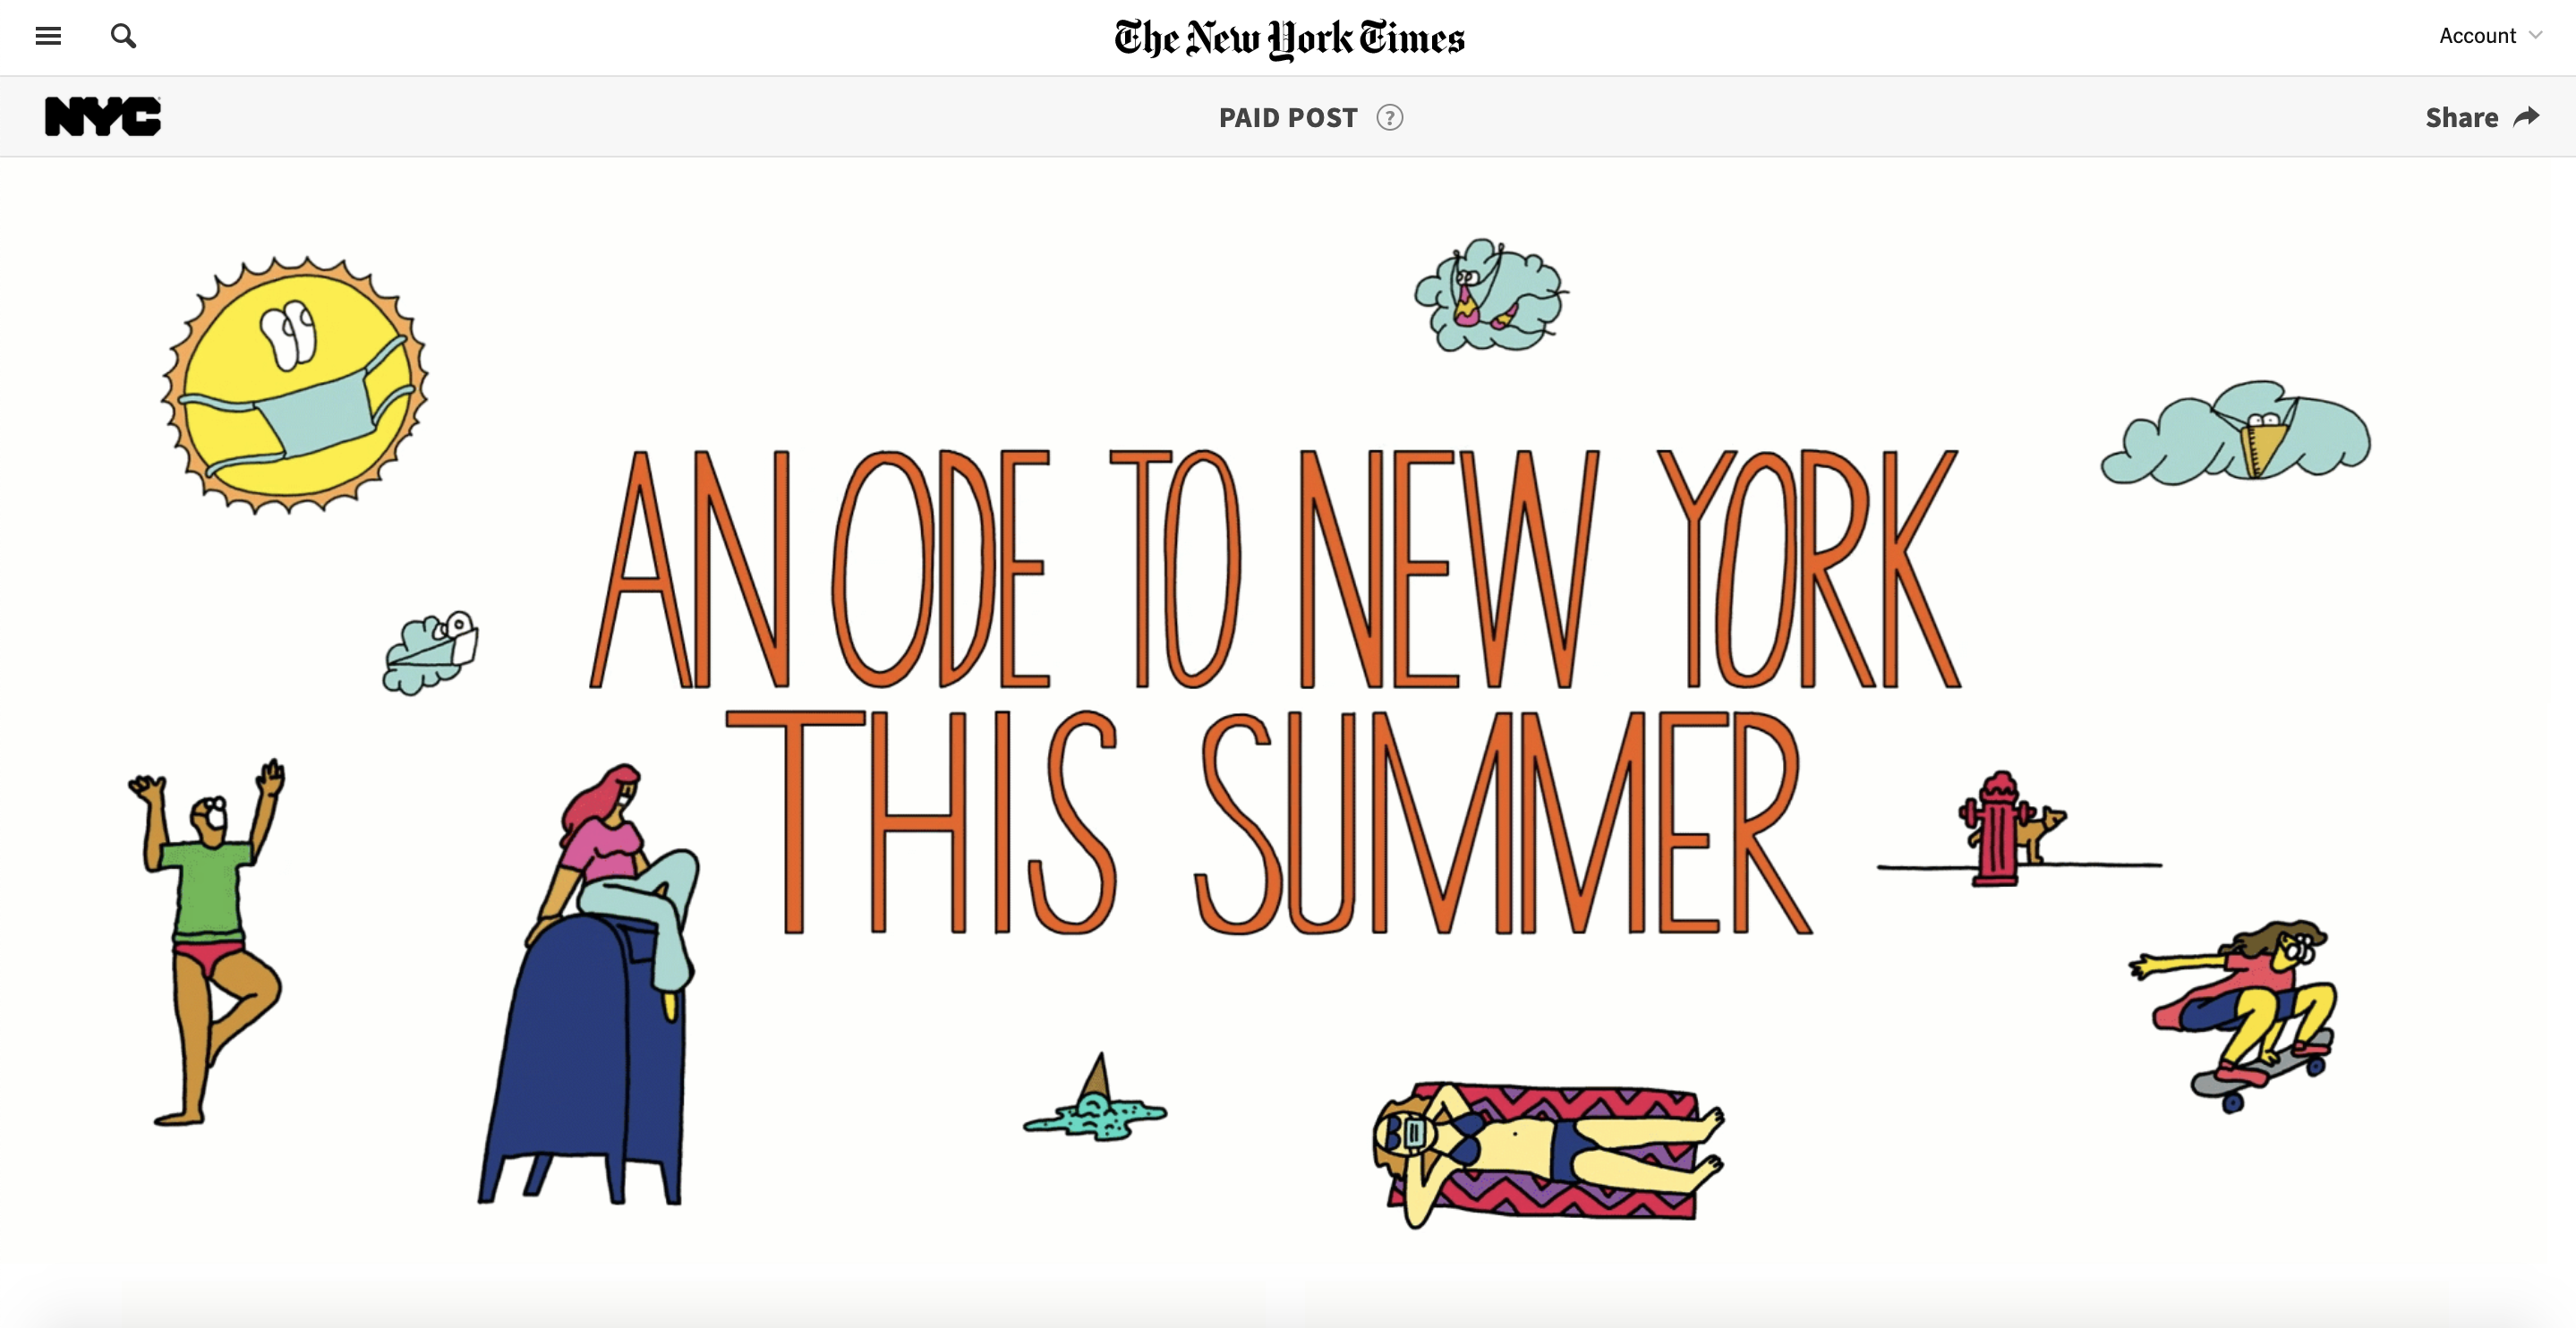 Branded content by City of New York on The New York Times